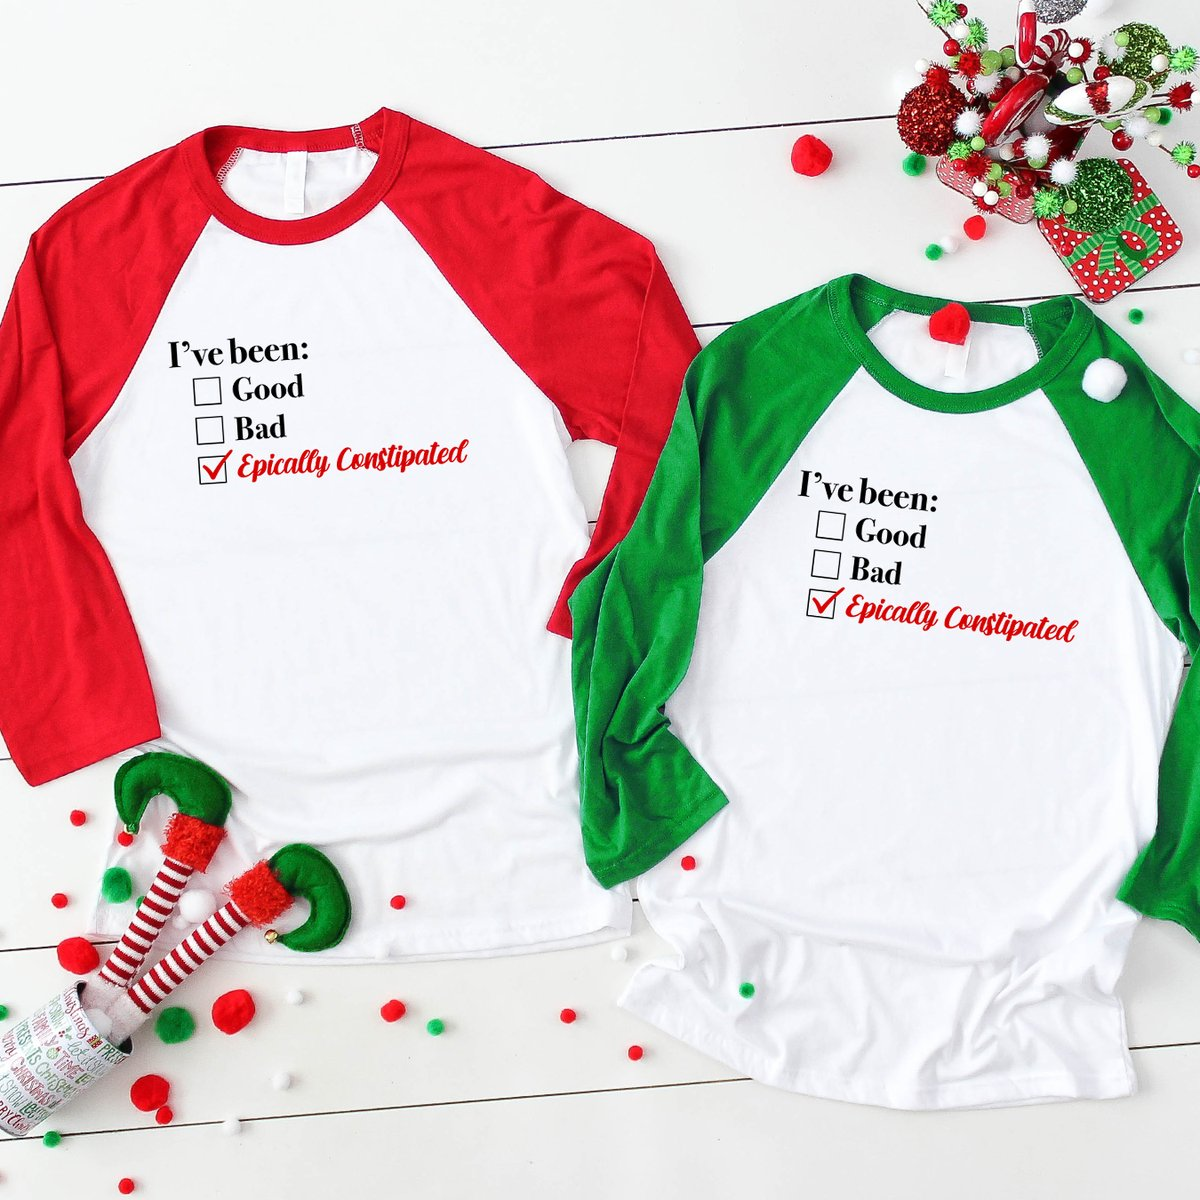 """'Tis the season for some sassy swag - use code """"HAILSANTA"""" for 25% off your favorite FOD merch: https://shop.funnyordie.com/collections/holidays…"""